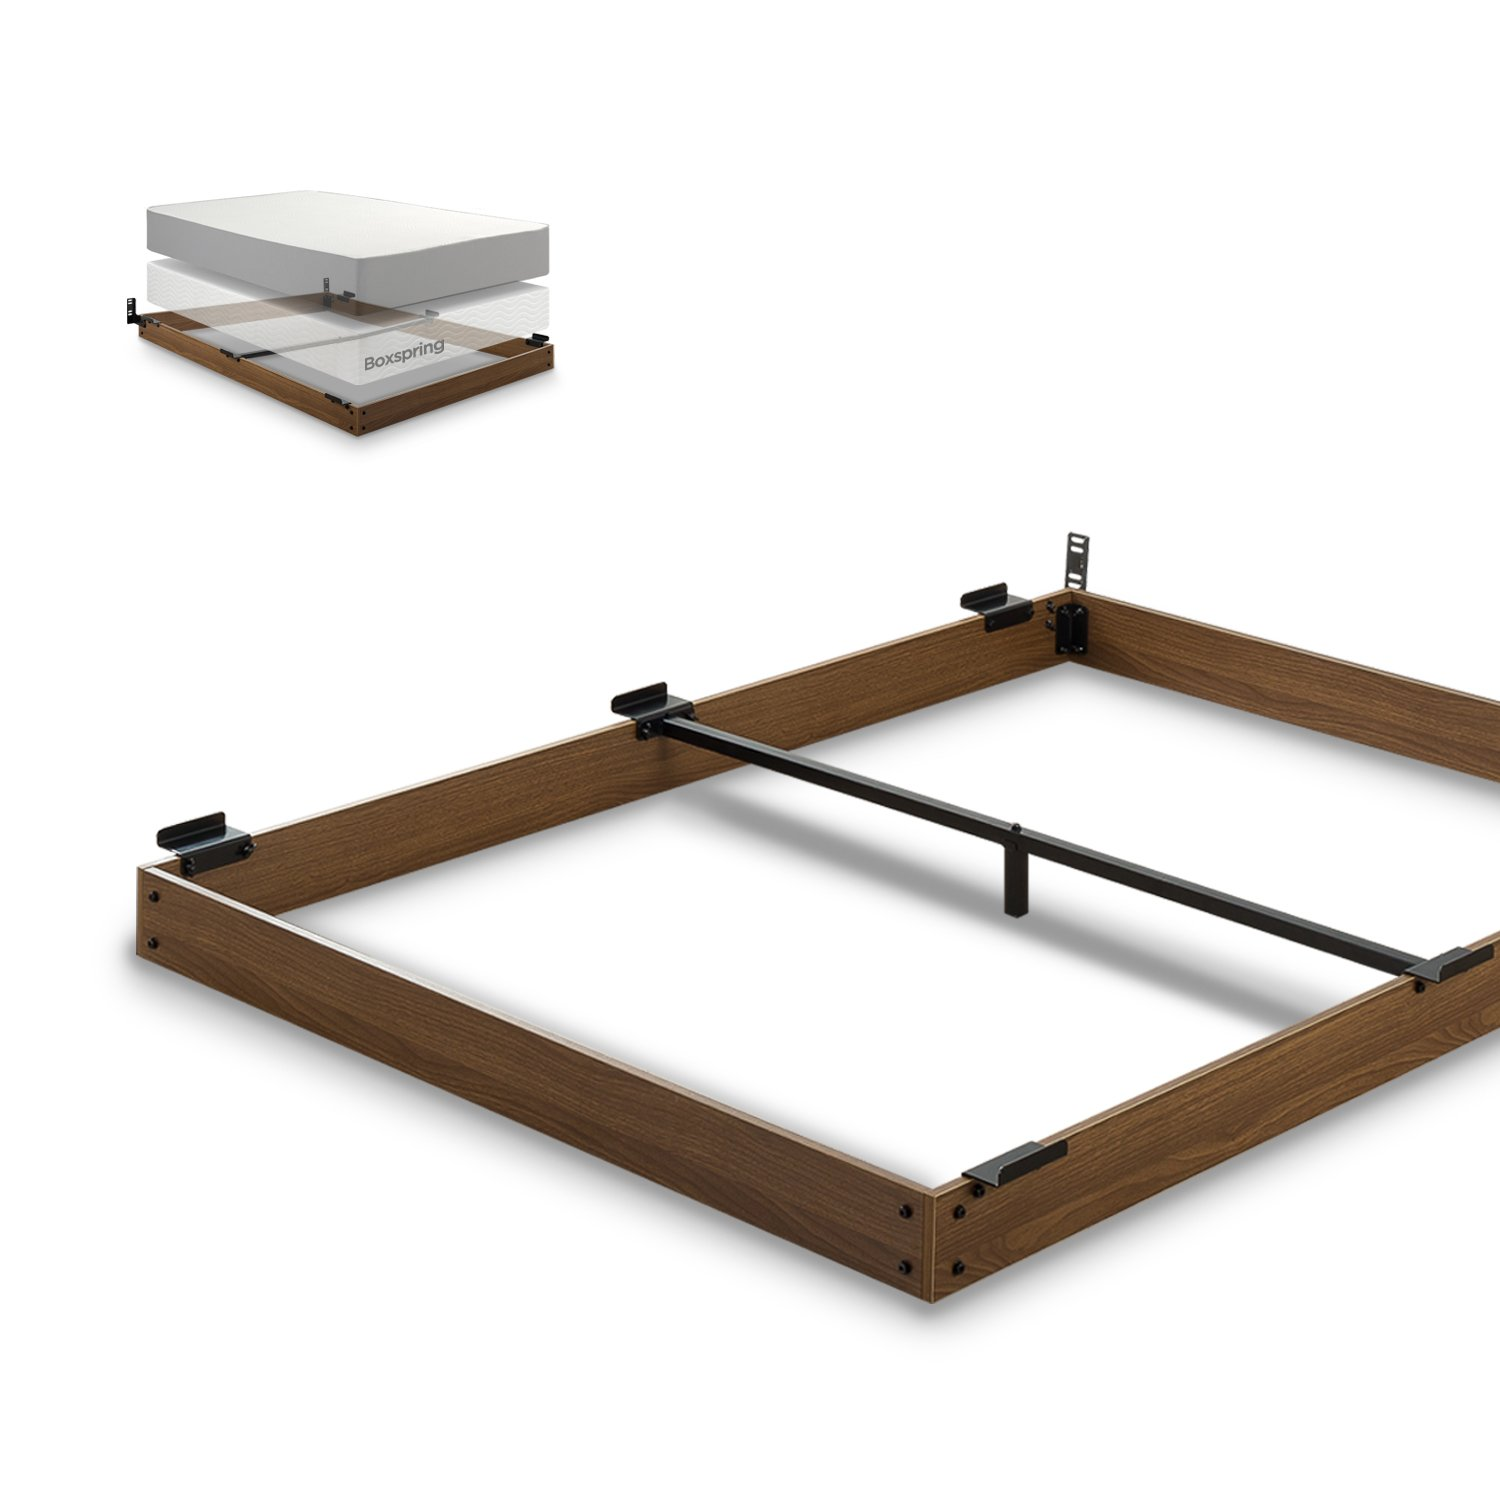 Zinus 5 Inch Wood Bed Frame for Box Spring & Mattress Set, Keep Pets from Beneath Your Bed, King